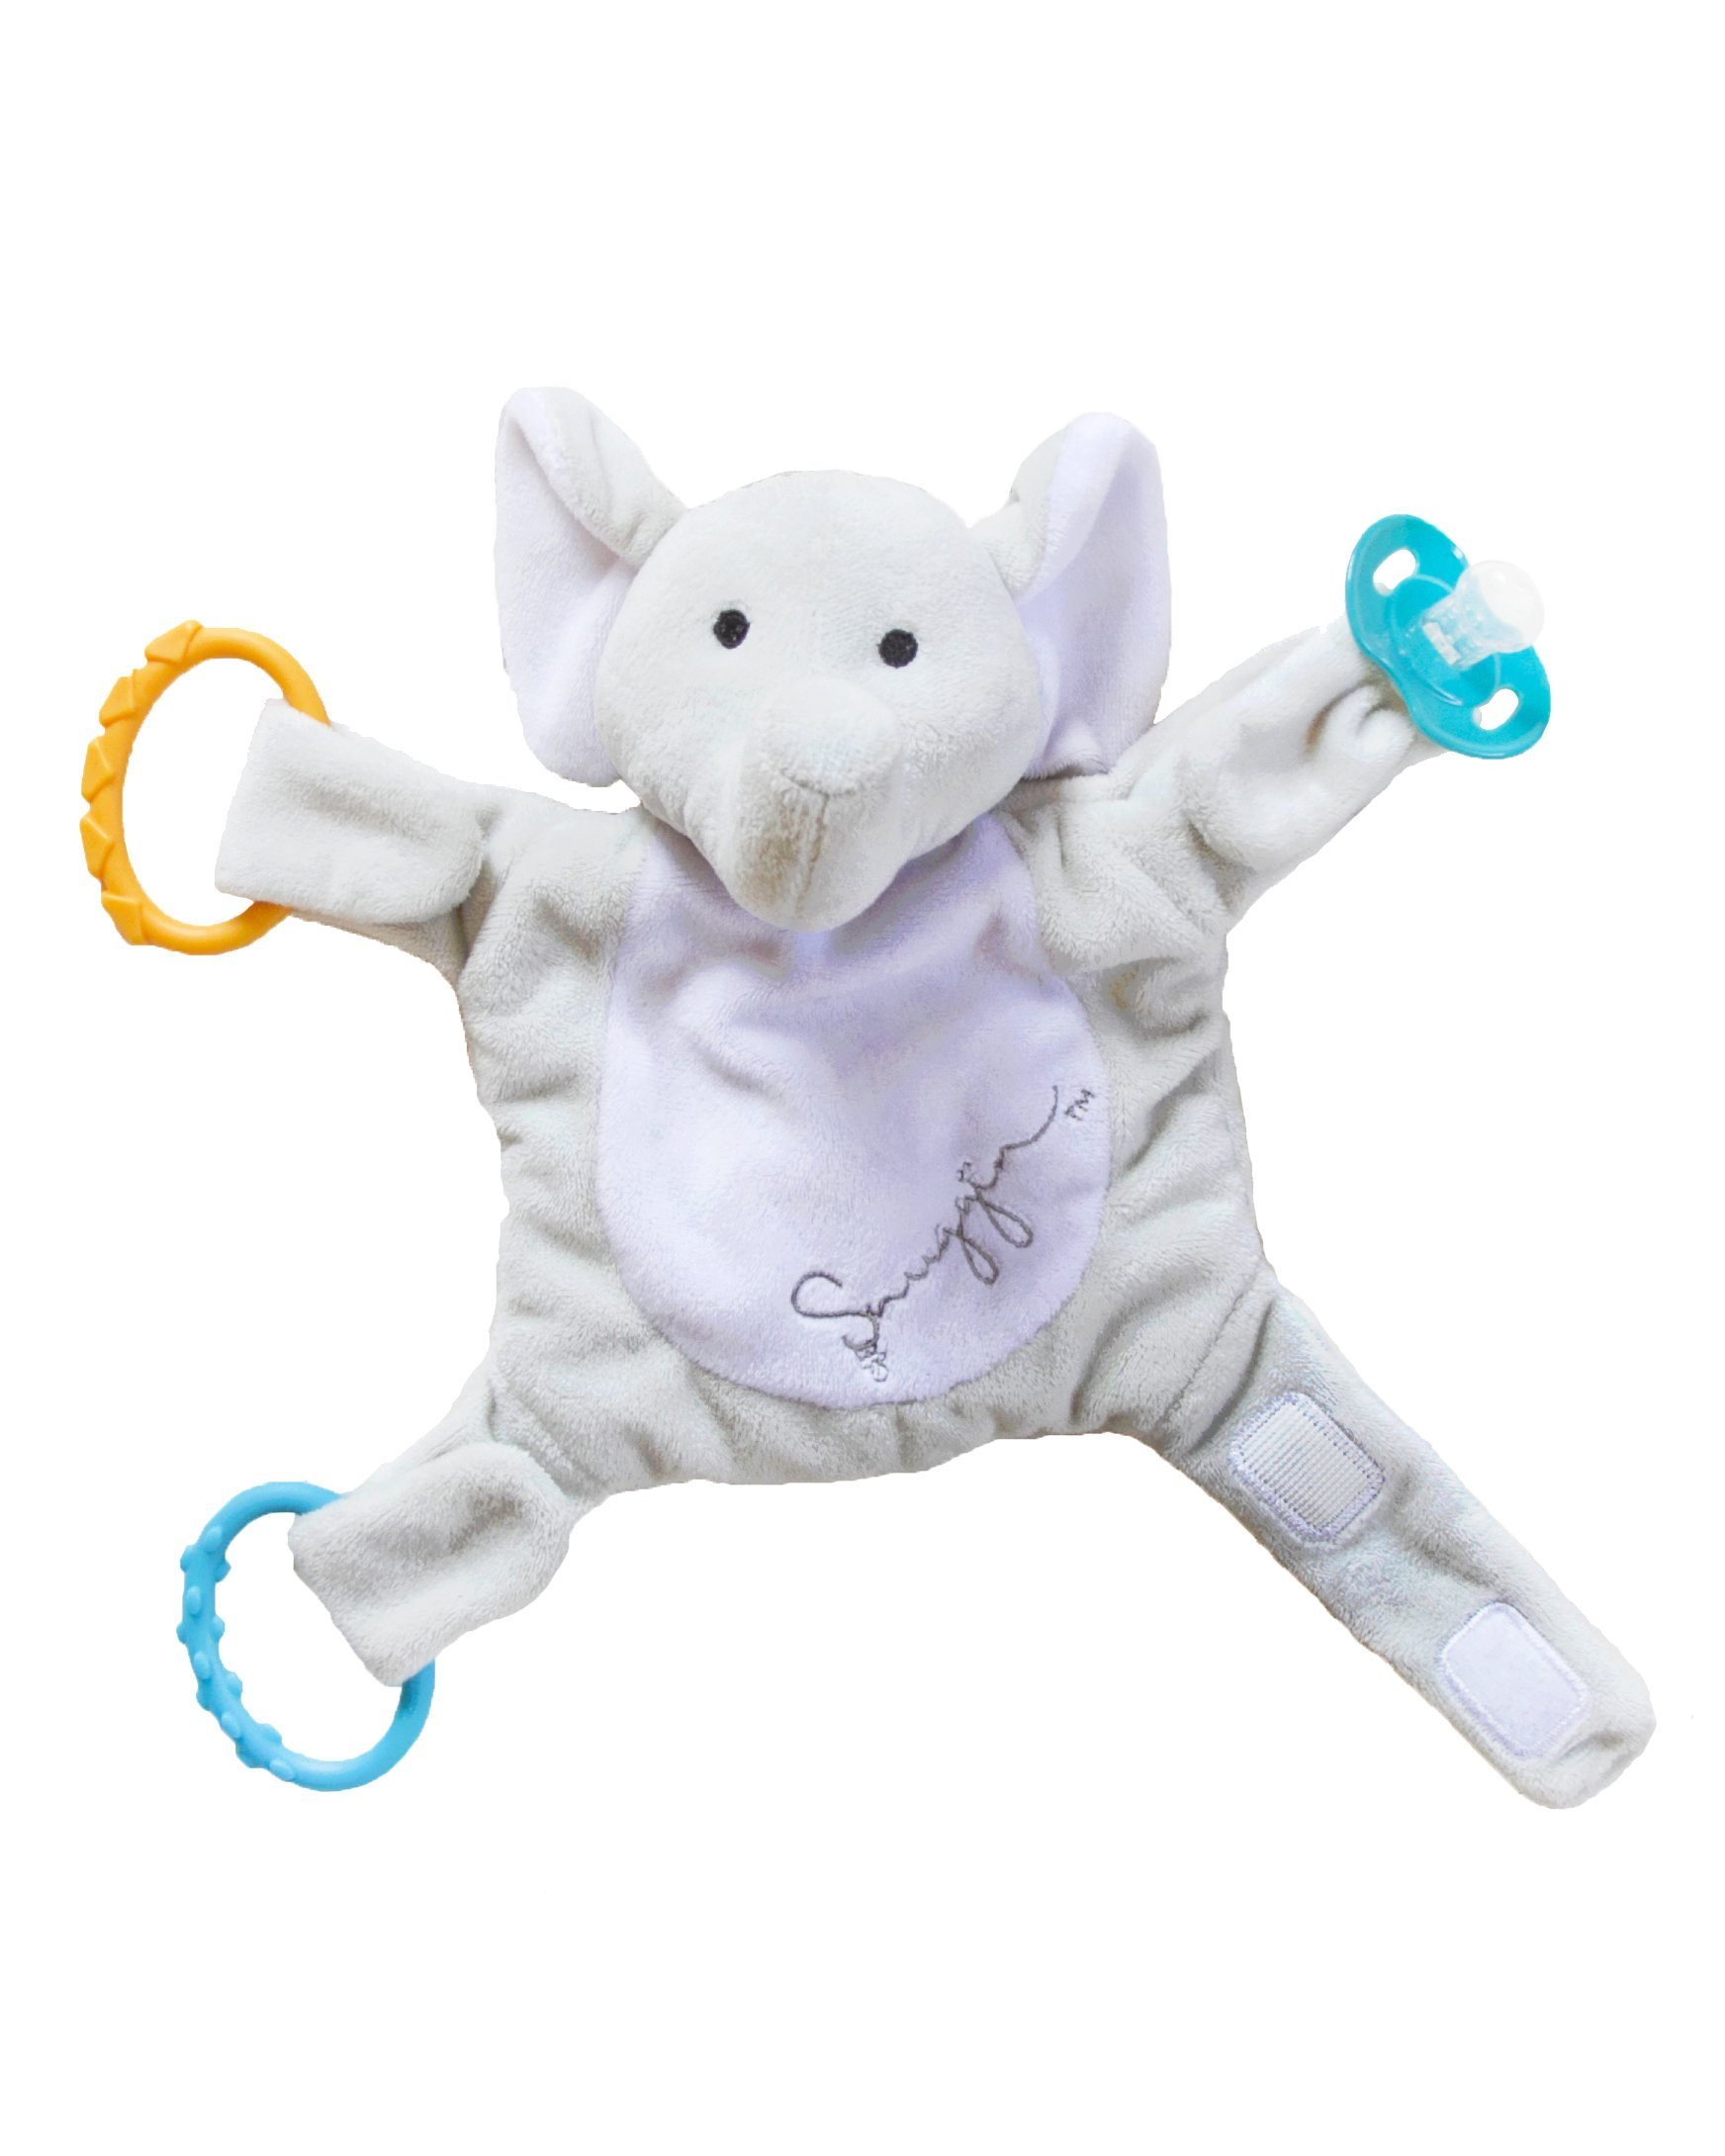 Snuggin - The Comforting Day and Night Lovey Miracle for Babies (Gray Elephant) - Plush Stuffed Animal Pacifier and Teether Holder